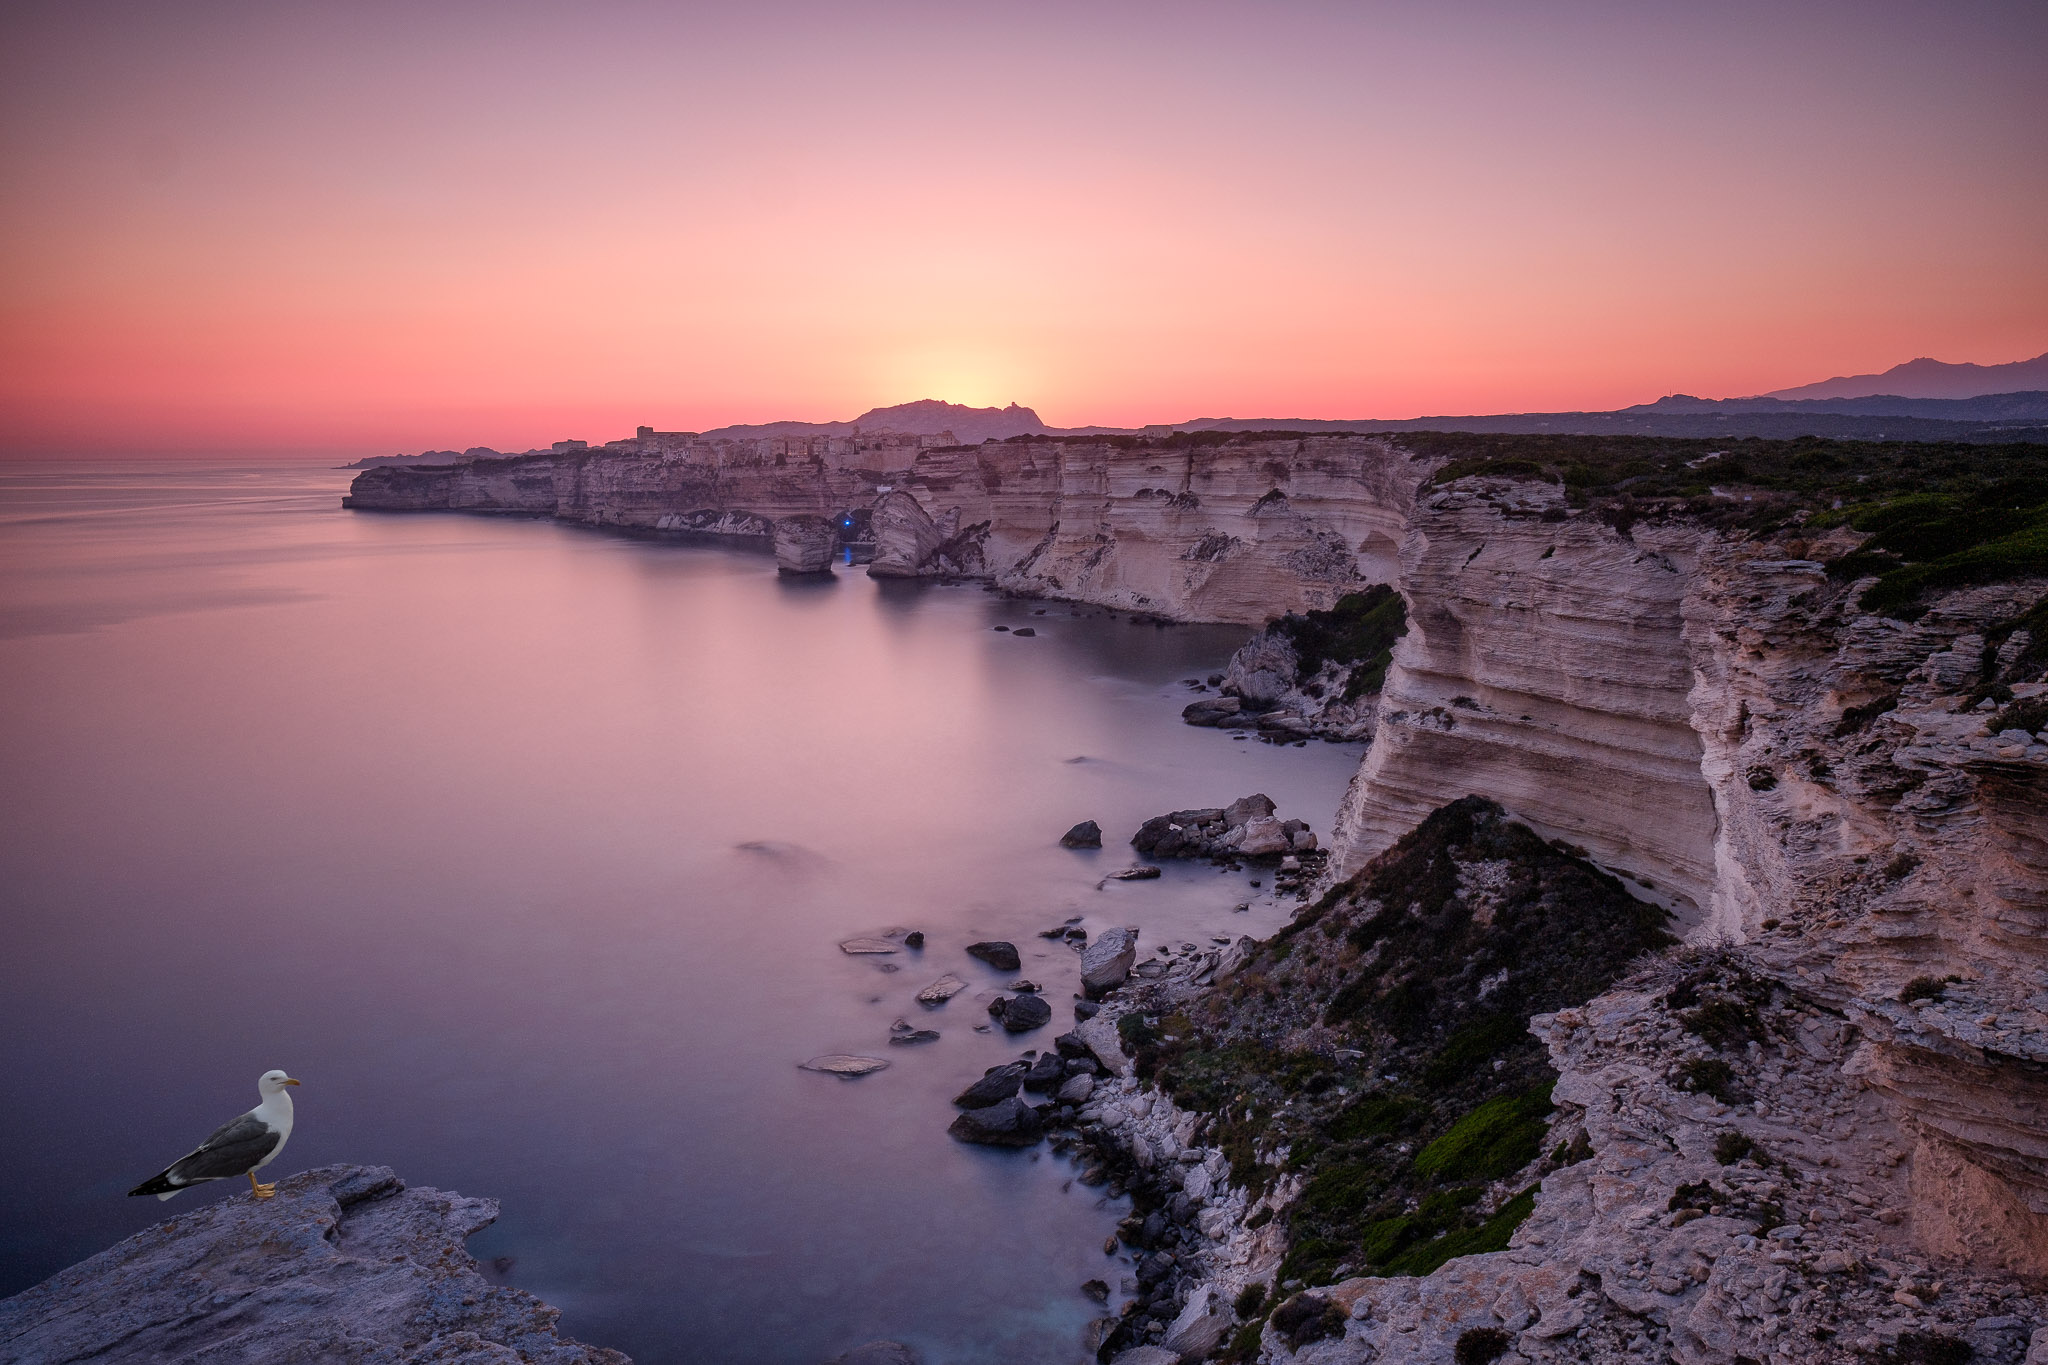 The cliff of Bonifacio, France